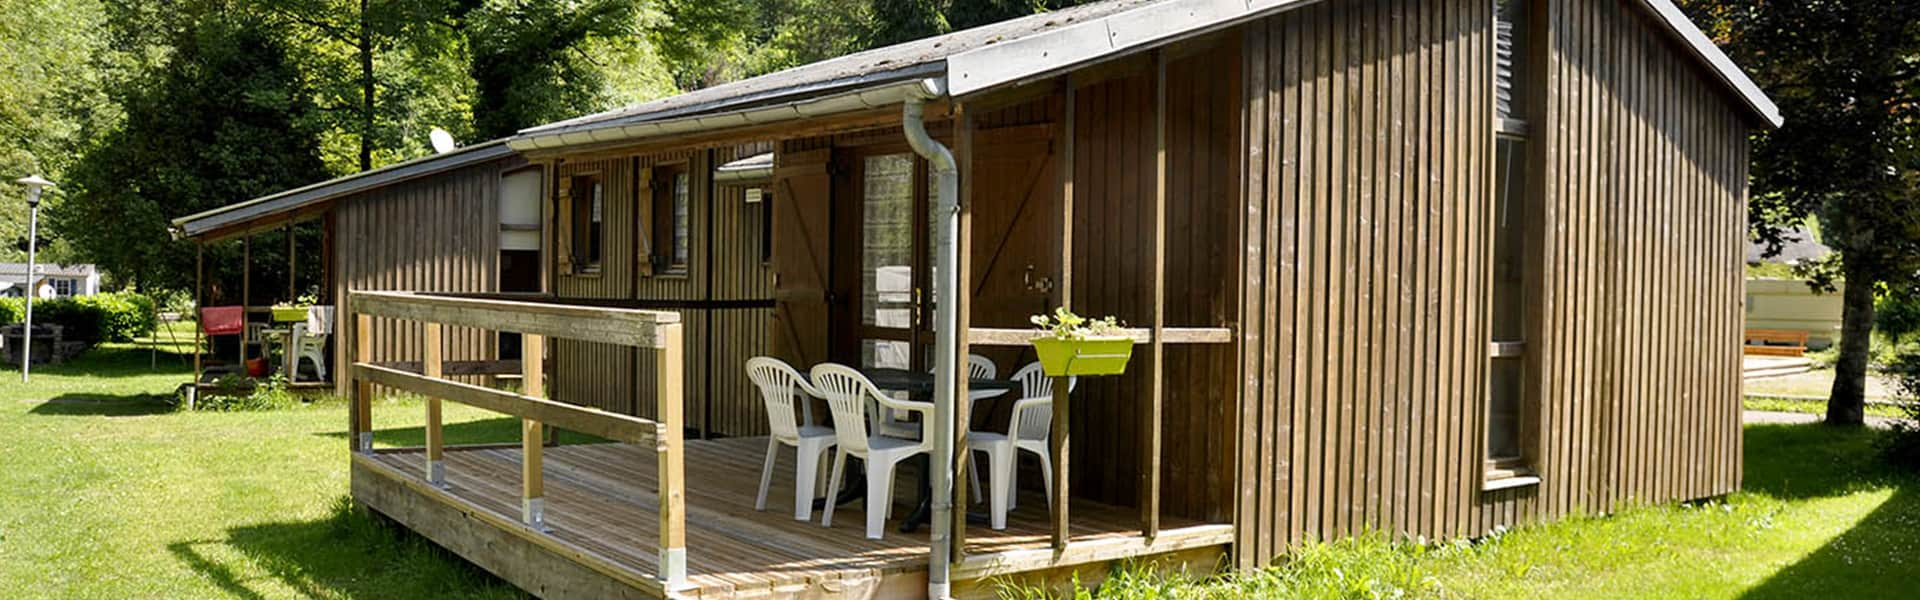 camping-couledous-bandeau-accueil-chalet-4-6-min